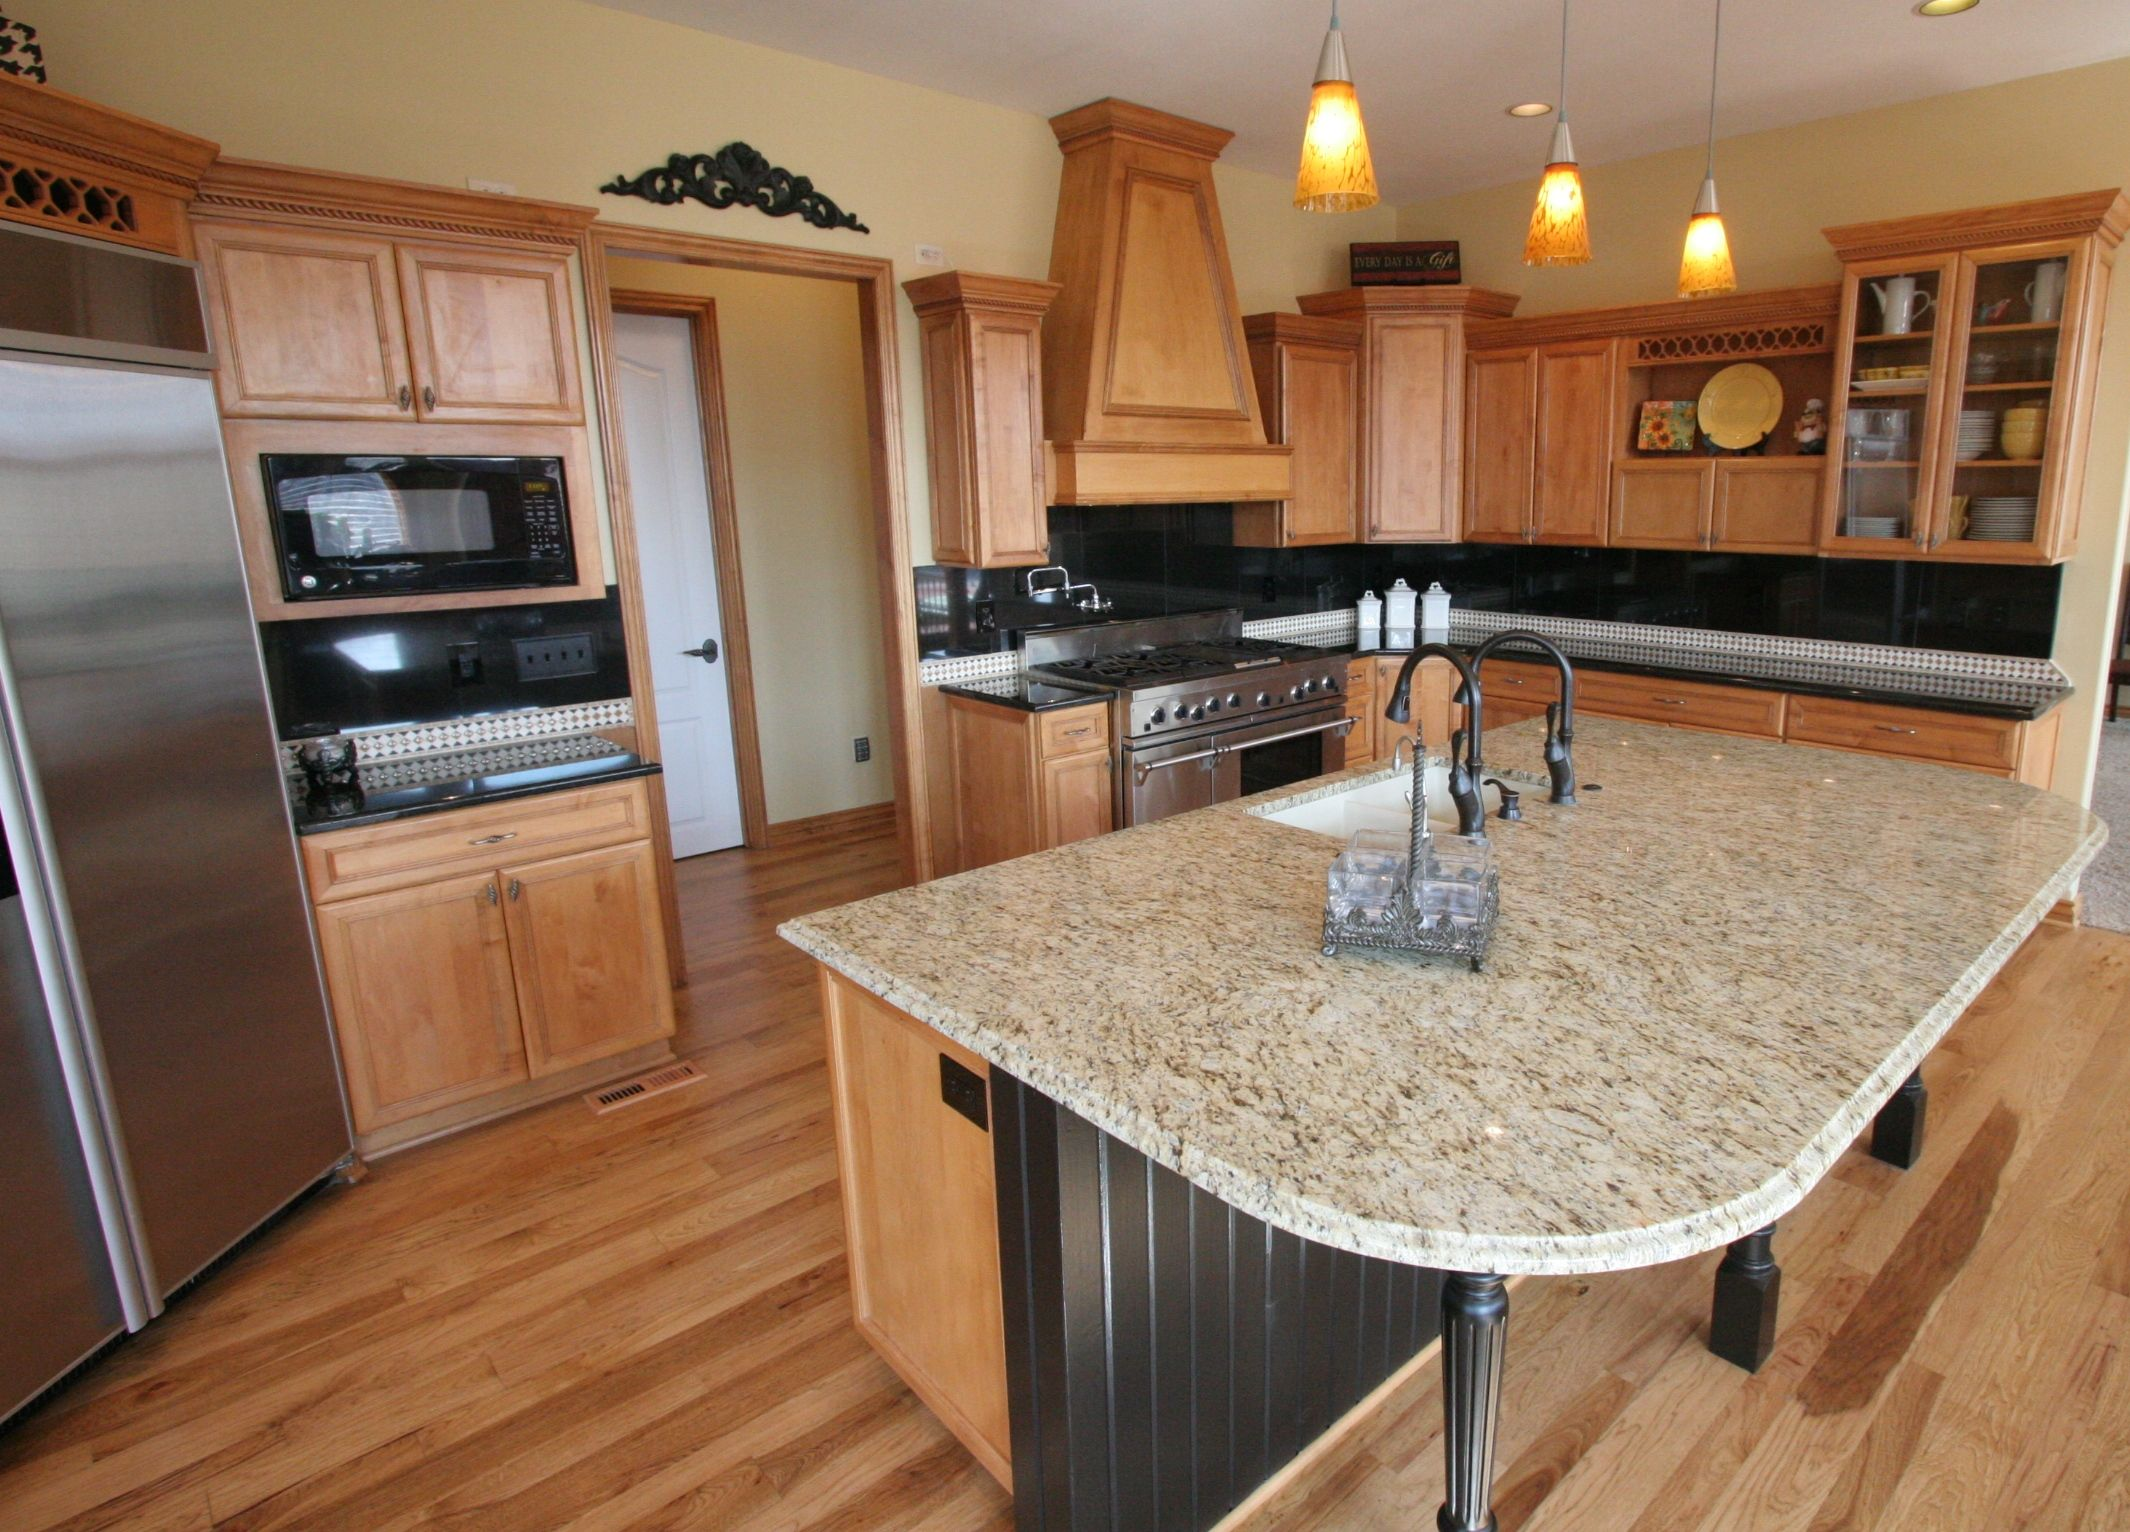 U0027Tune Upu0027, Modify Island To One Level, Granite, Backsplash.